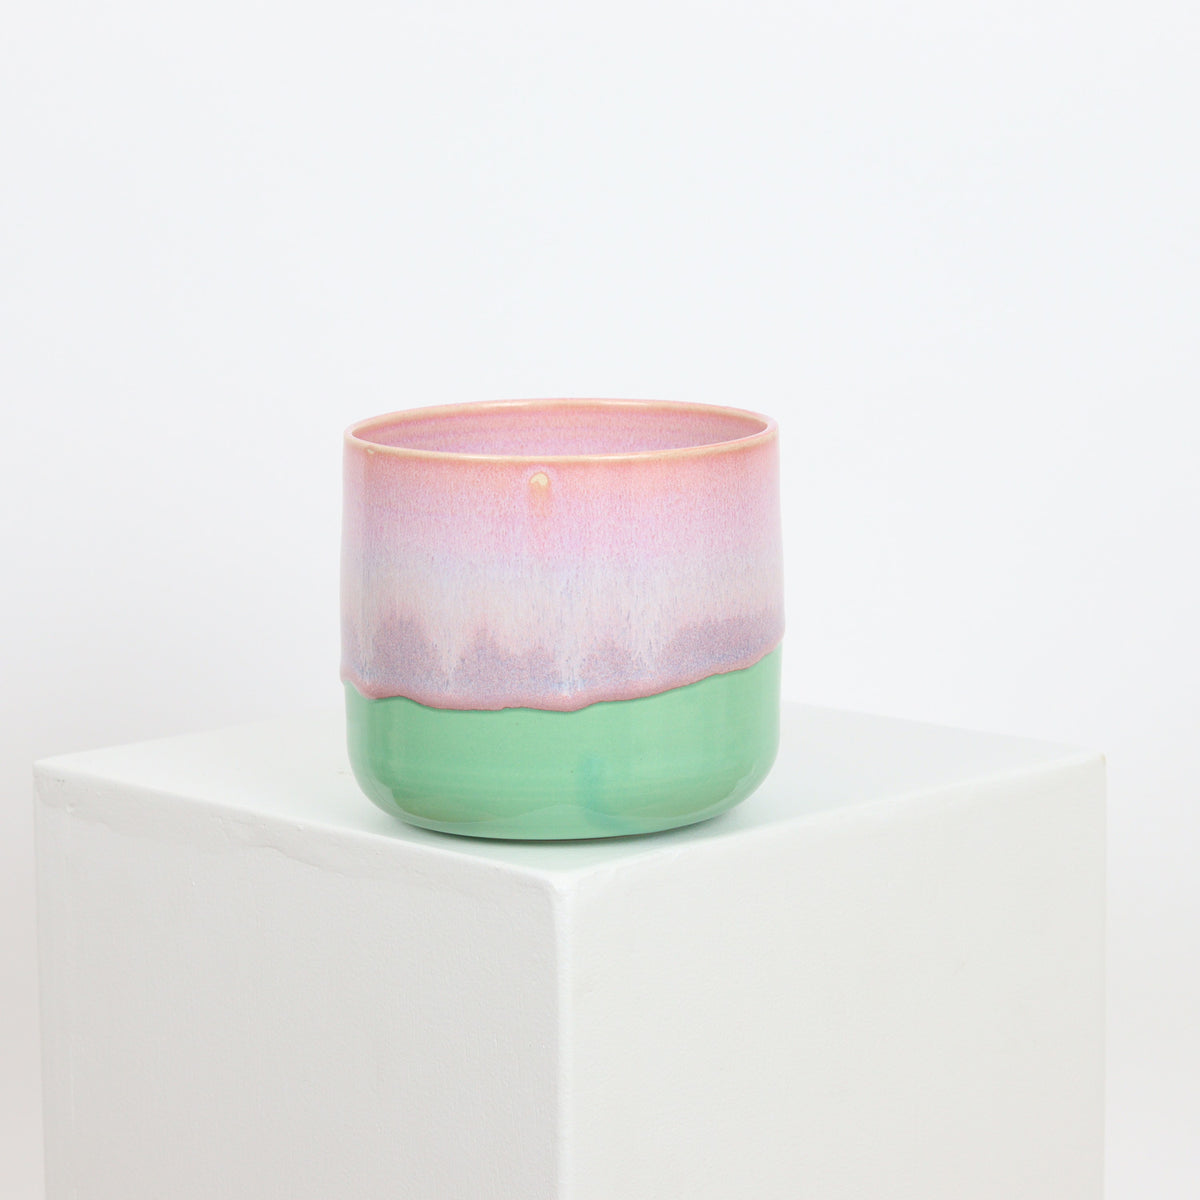 21113 - Mint with Pink Drip - Discounted - Rim Glaze Defect